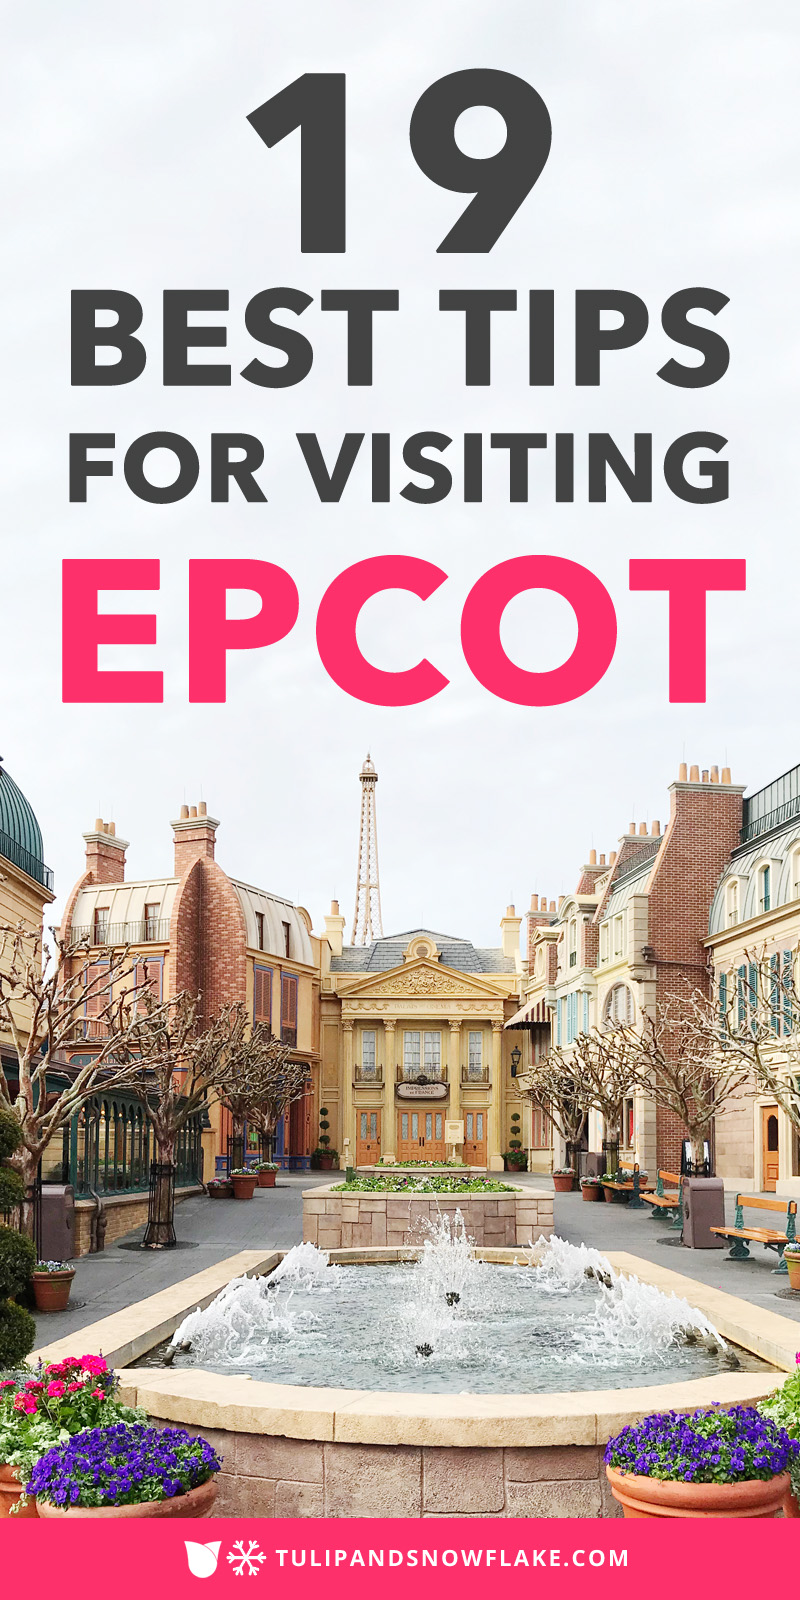 Best Tips for Visiting Epcot